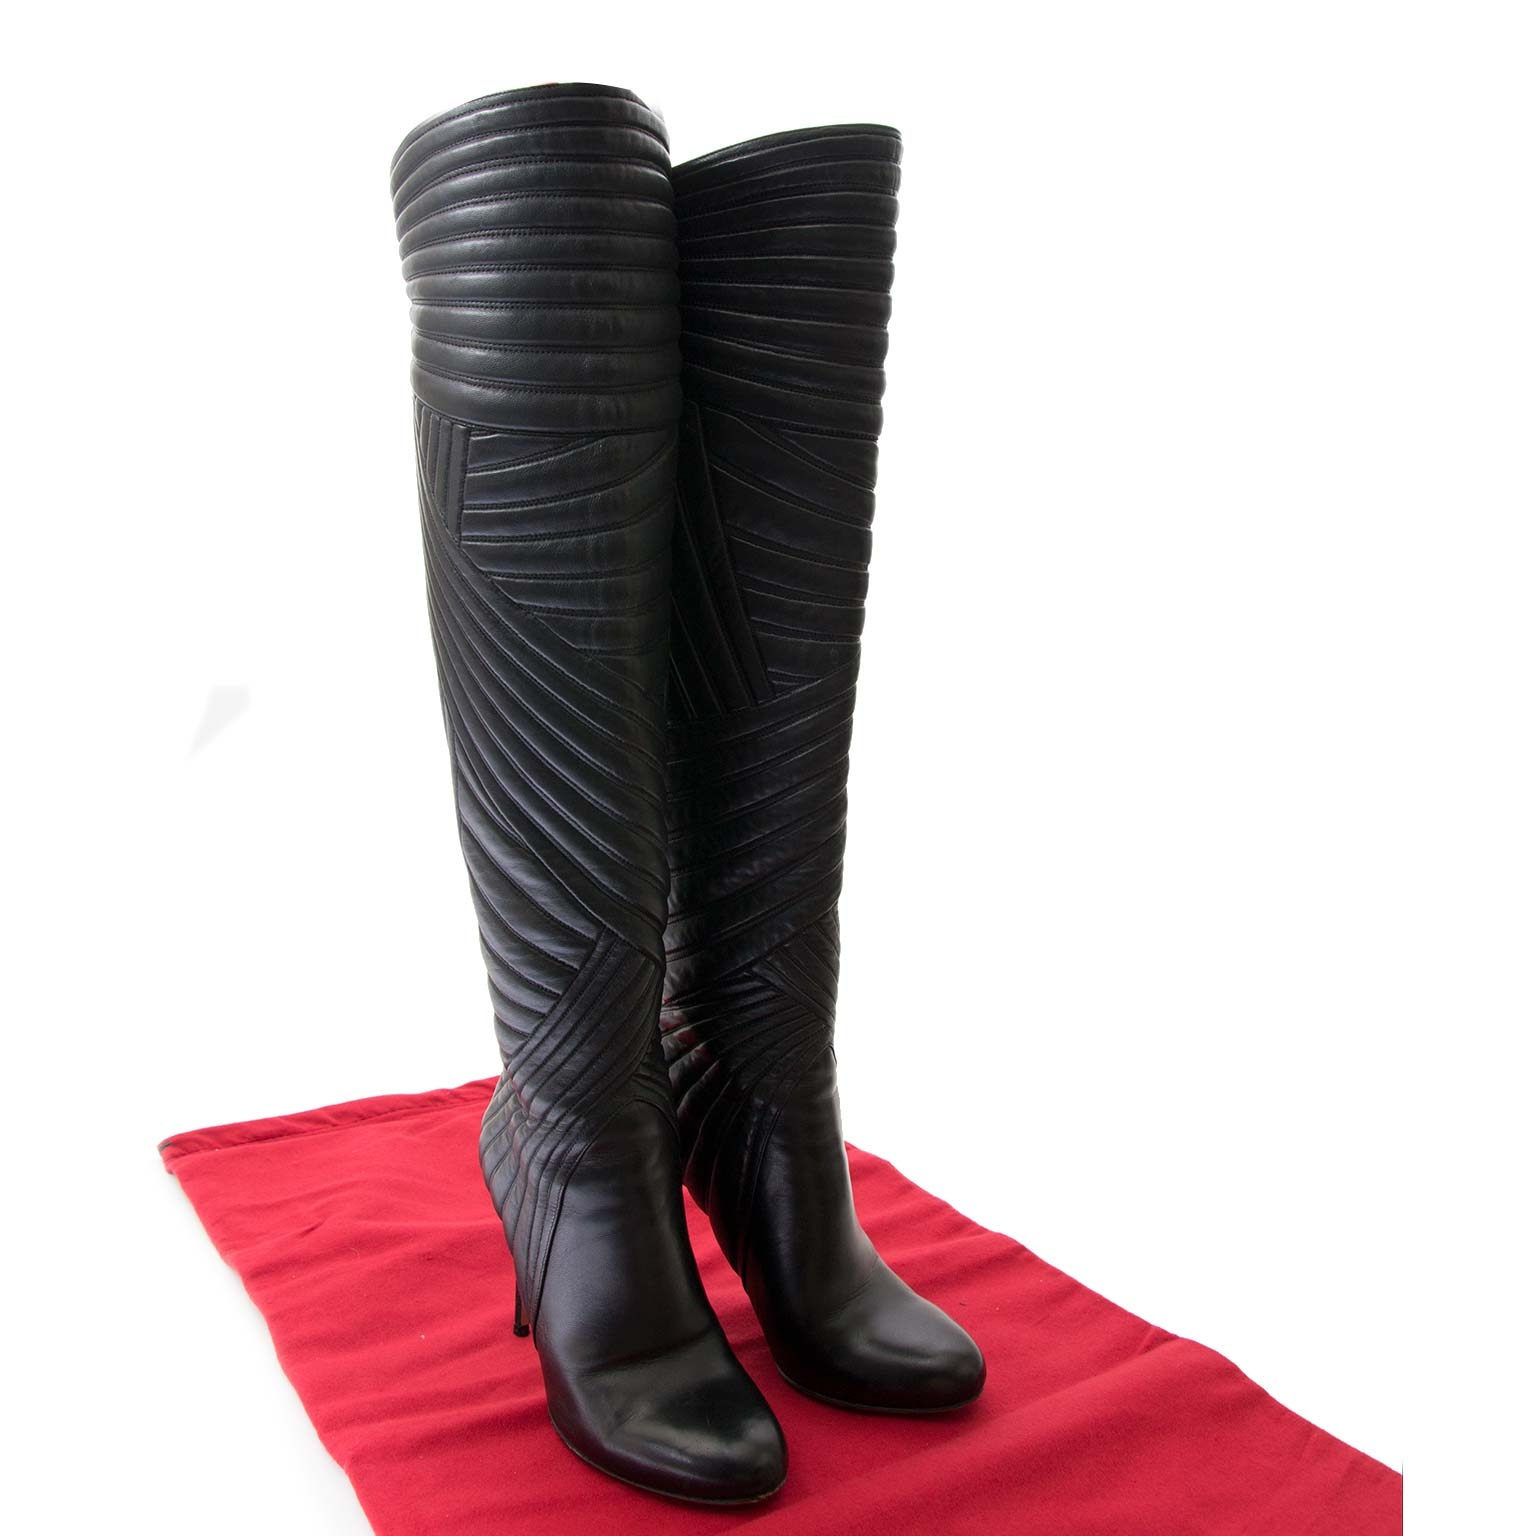 c8df4bba02ff ... valentino stitched leather knee boots now for sale at labellov vintage  fashion webshop belgium